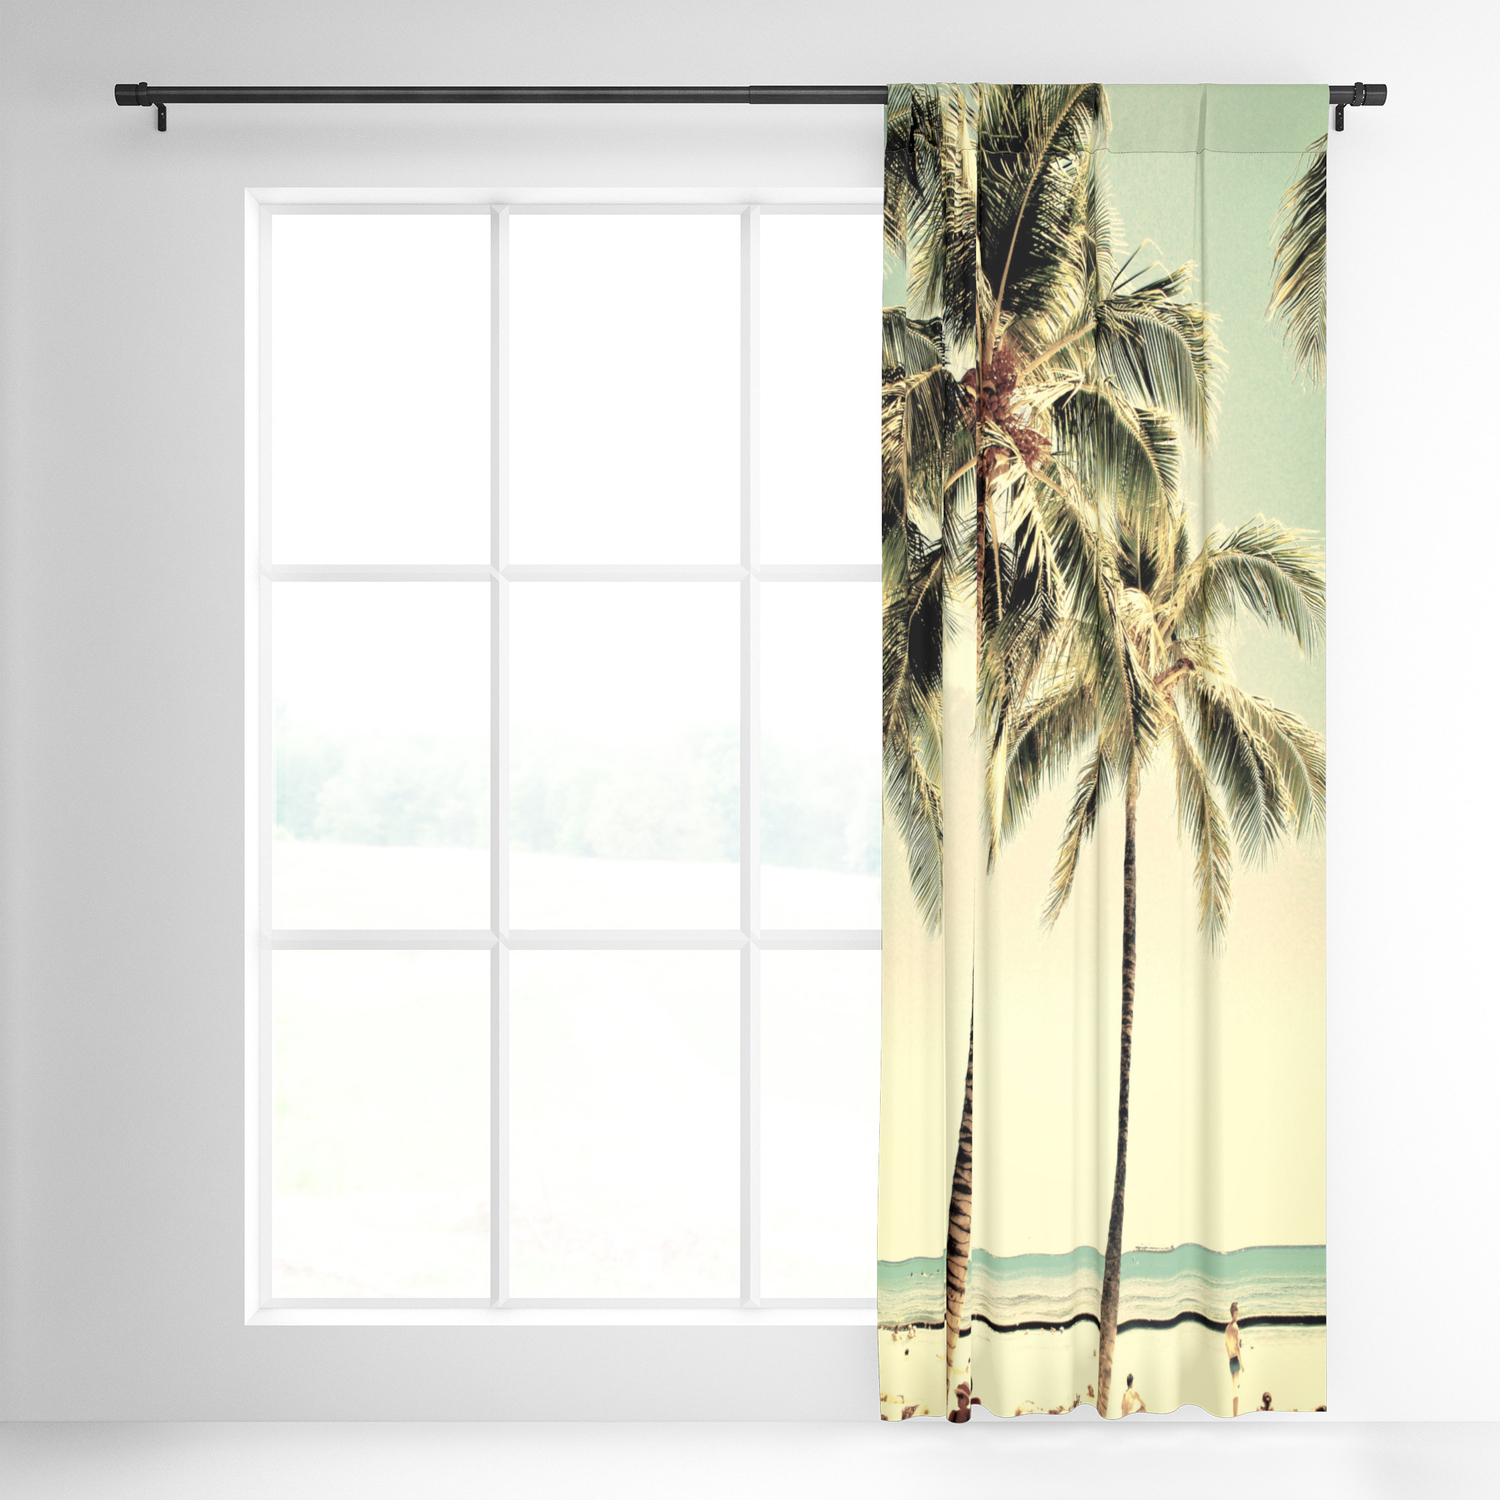 Vintage Sea Shore All Over Printed Window Curtains Inside Latest Retro Vintage Palm Tree With Hawaii Summer Sea Beach Blackout Curtain Lifeisbeautiful (View 16 of 20)